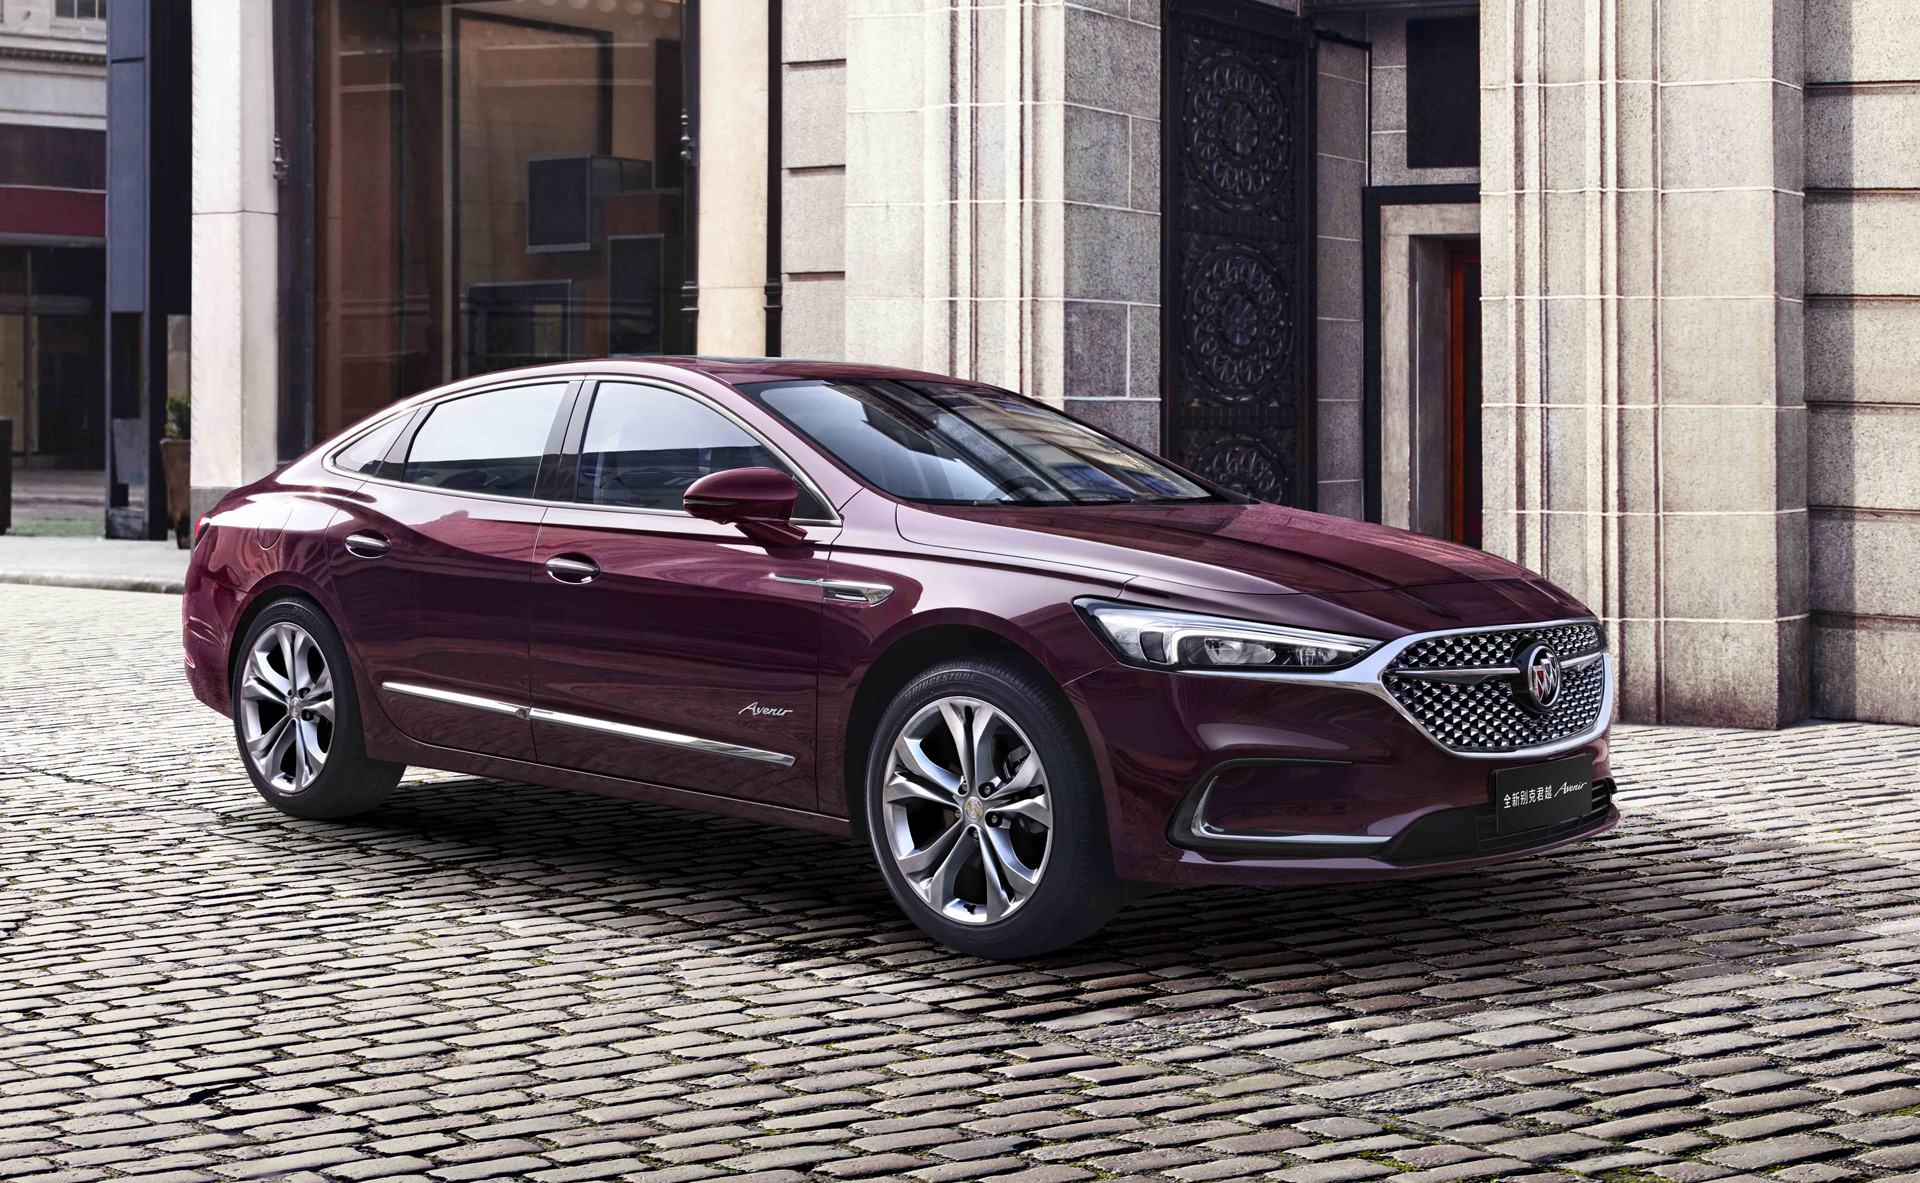 2020 Buick Lacrosse Made Handsome Just As It's Dropped In Us New 2022 Buick Lacrosse Cost, Awd, Build And Price